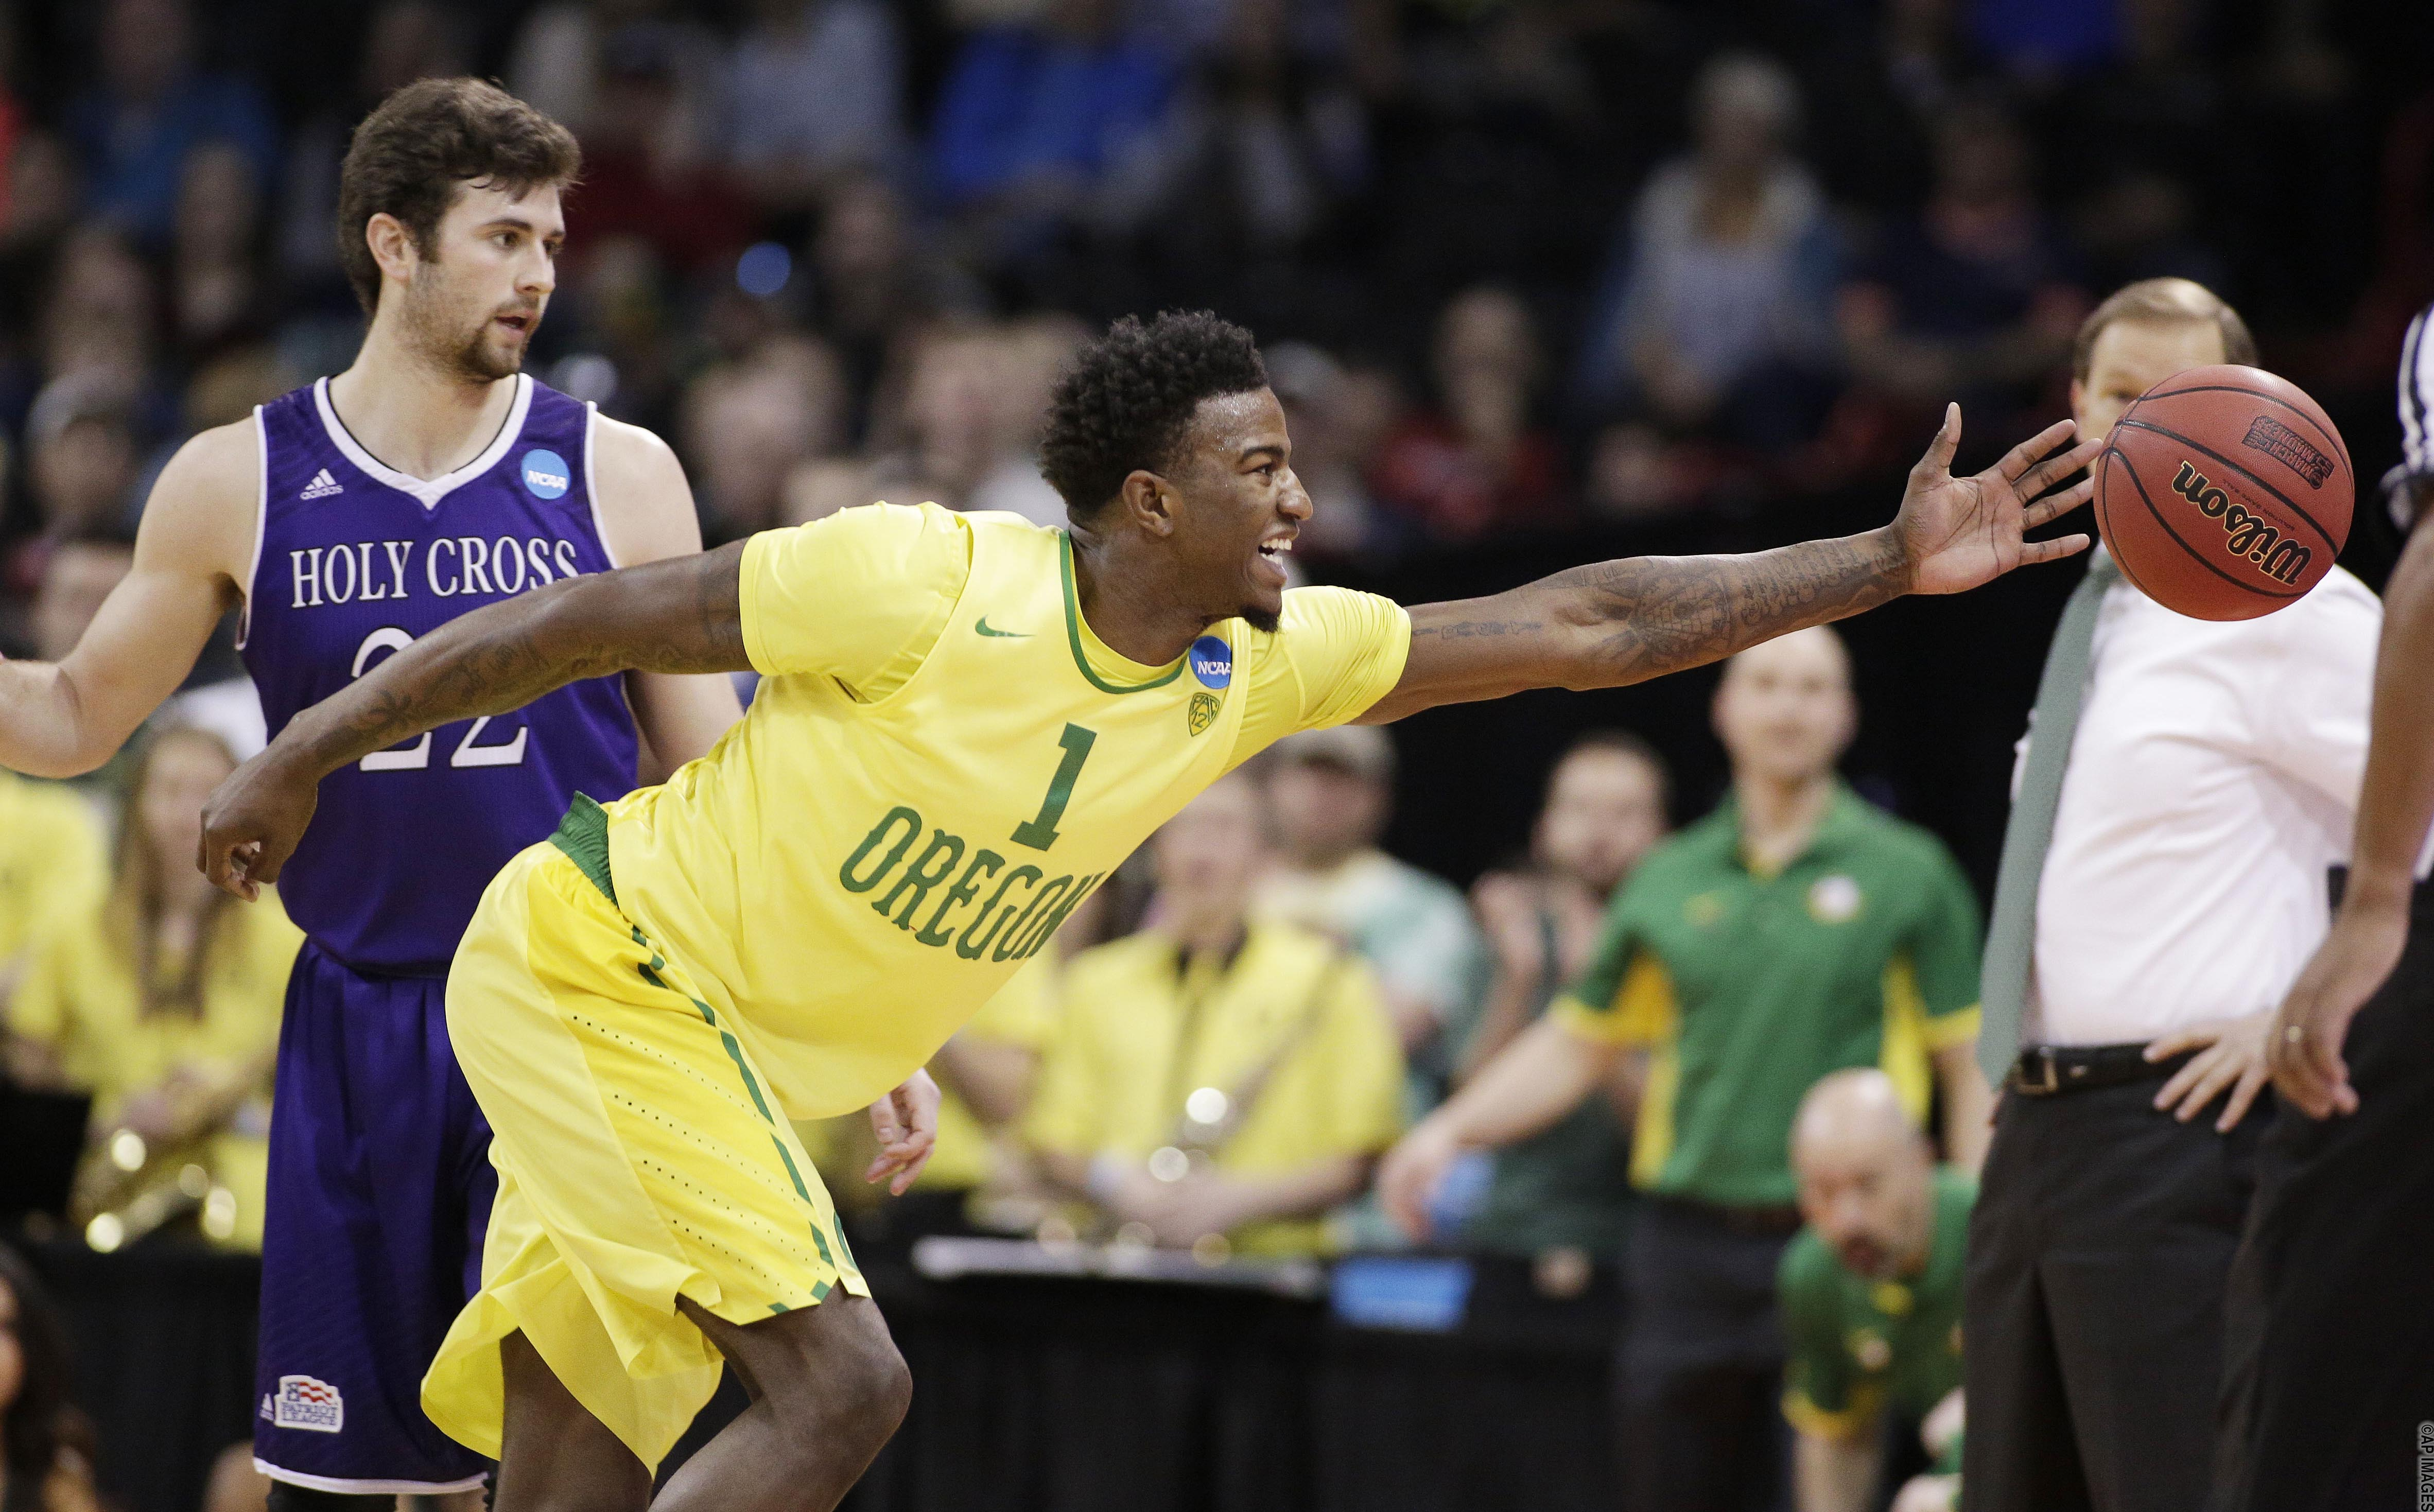 Oregon forward Jordan Bell (1) goes after a loose ball in front of Holy Cross guard Robert Champion (22) during the first half of a first-round men's college basketball game in the NCAA Tournament in Spokane, Wash., Friday, March 18, 2016. (AP Photo/Young Kwak)